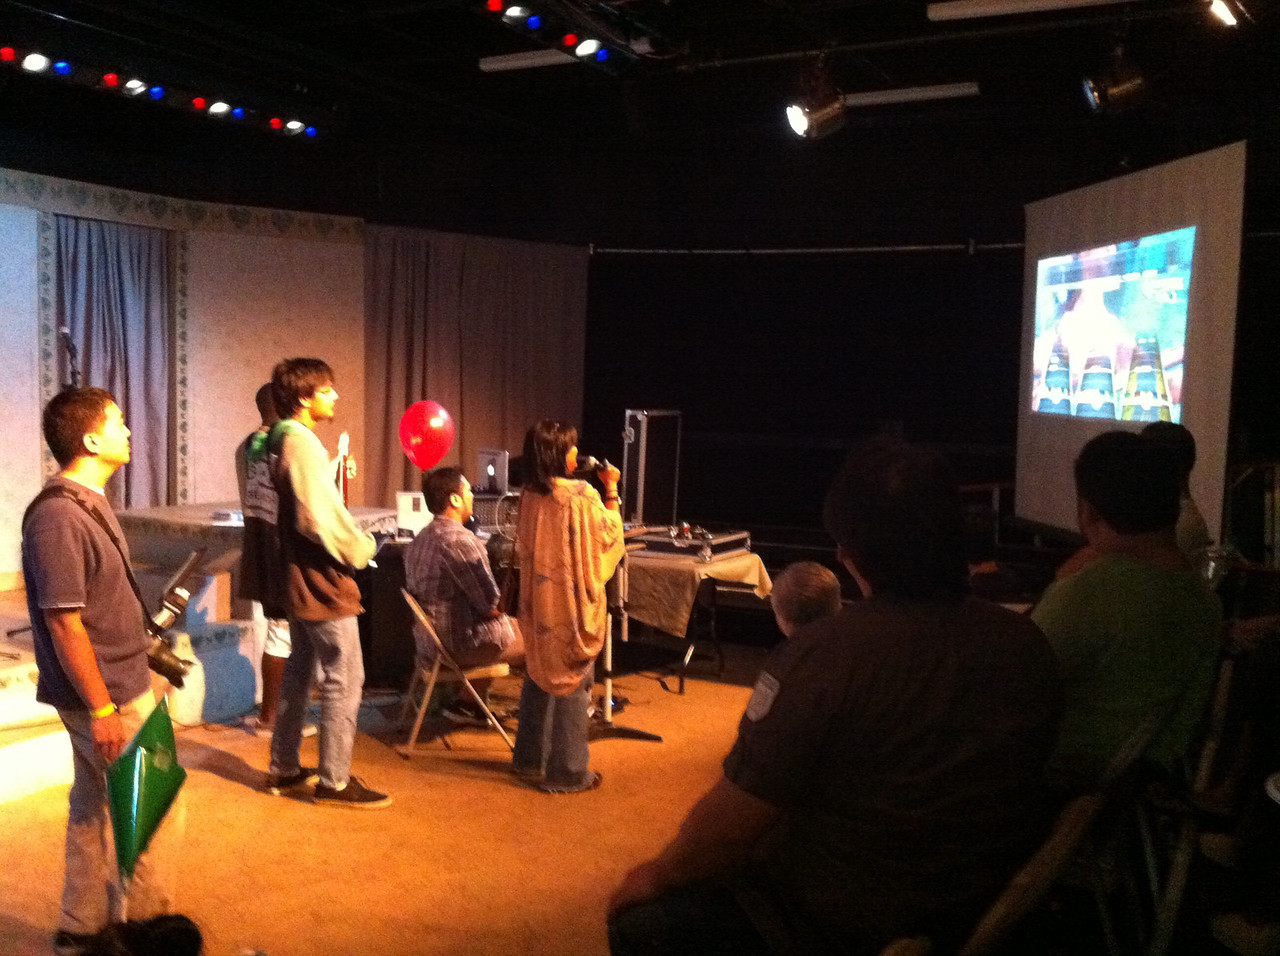 Gamers night at Improv night..